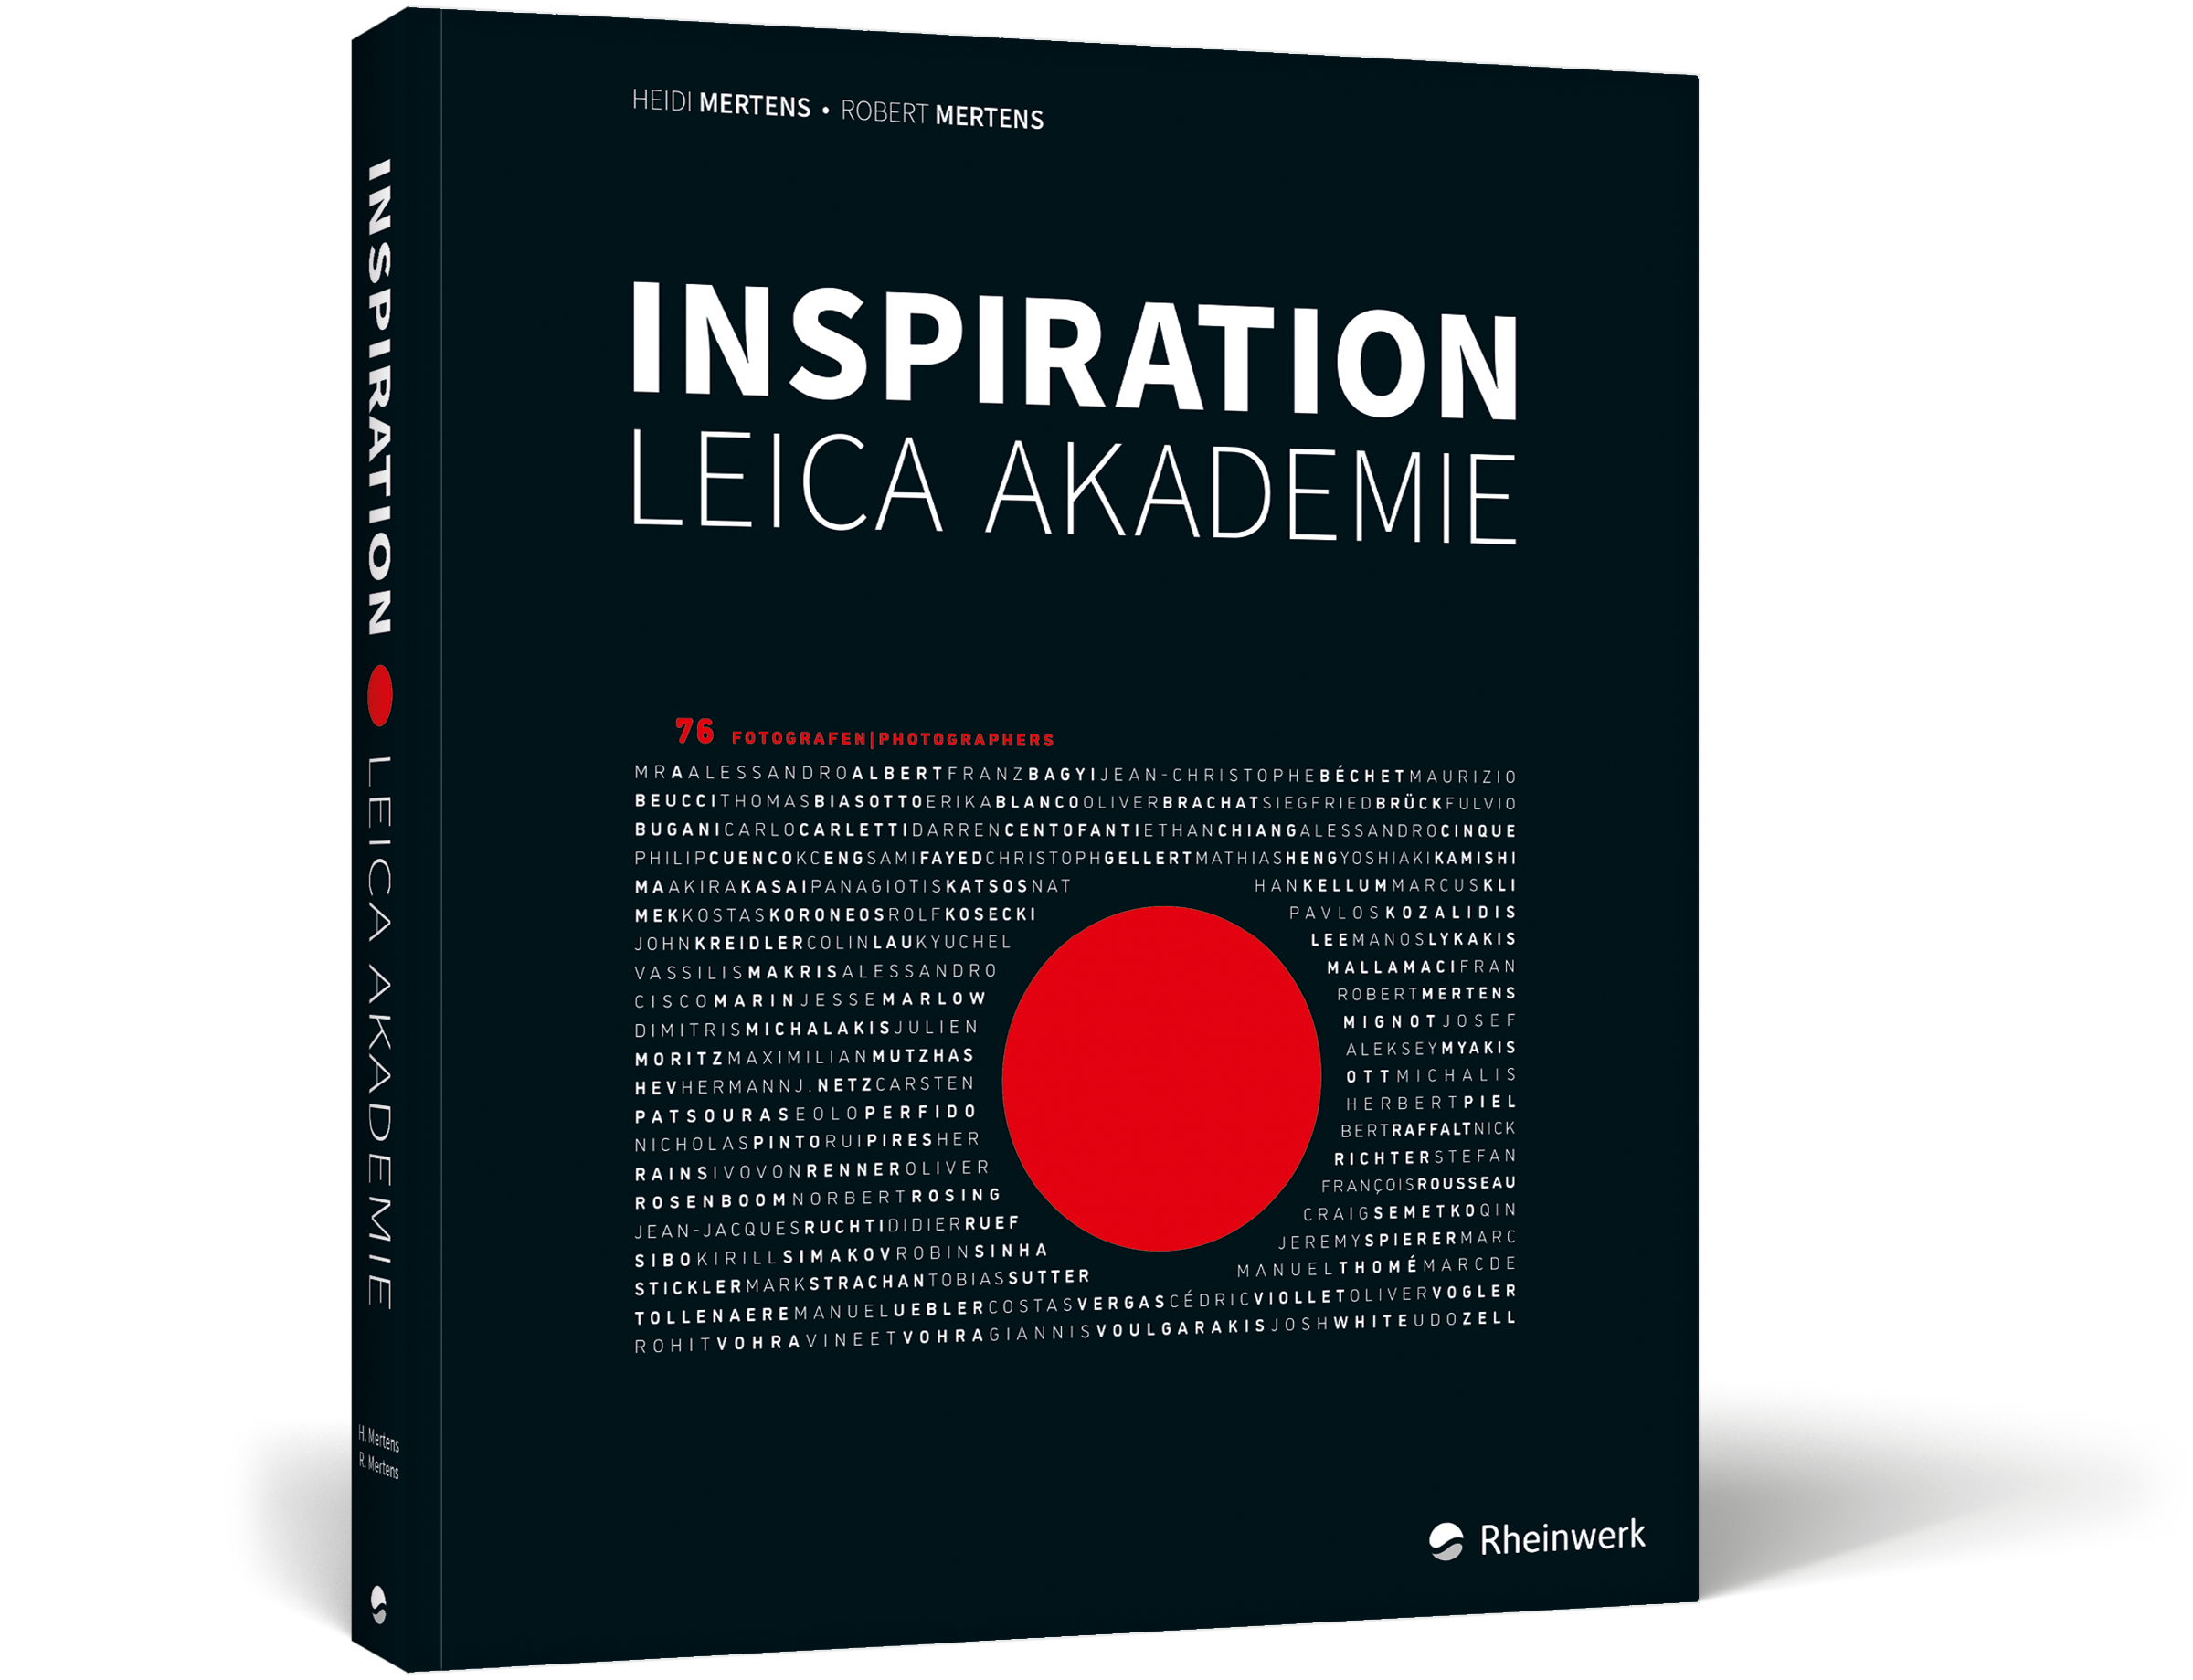 Inspiration Leica Akademie. Rheinwerk, Germany. 2020. (click image to enlarge)